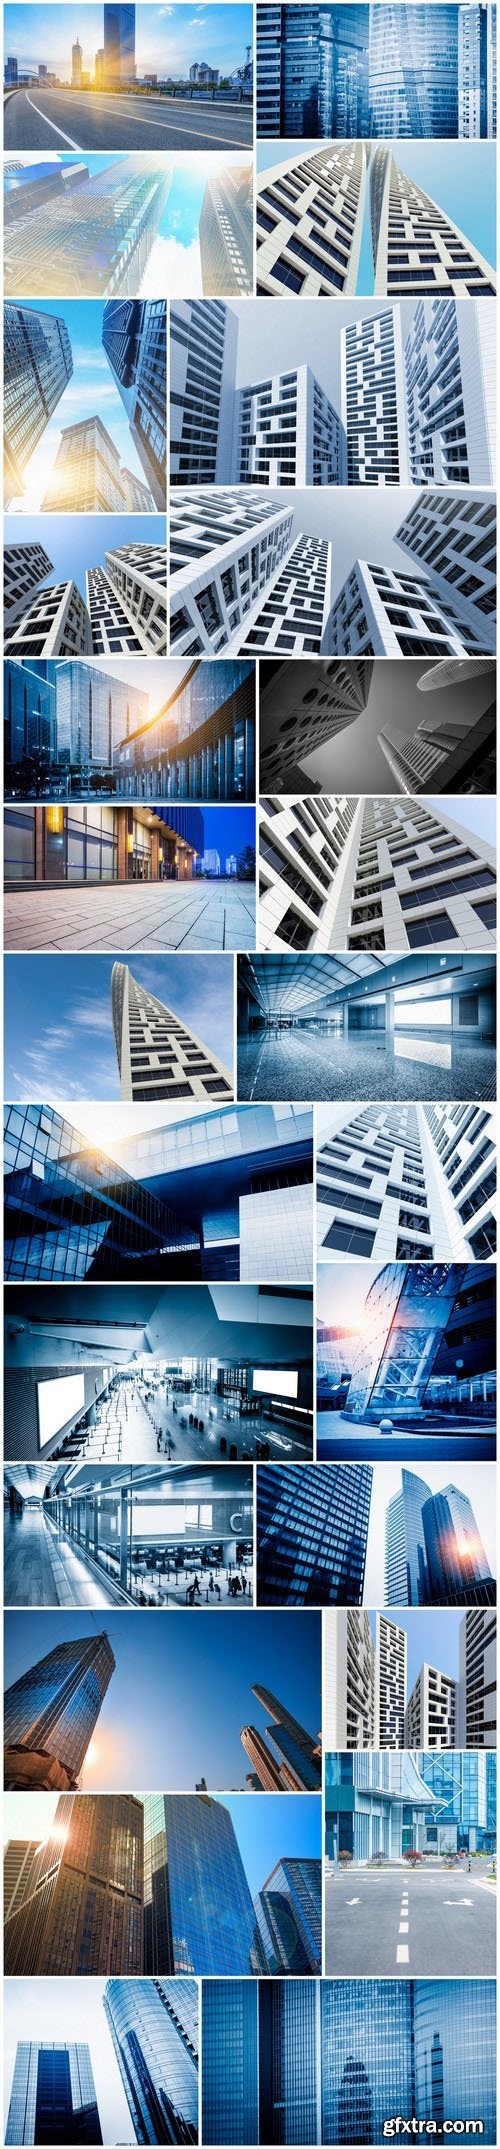 Modern Architecture 6 - Set of 26xUHQ JPEG Professional Stock Images